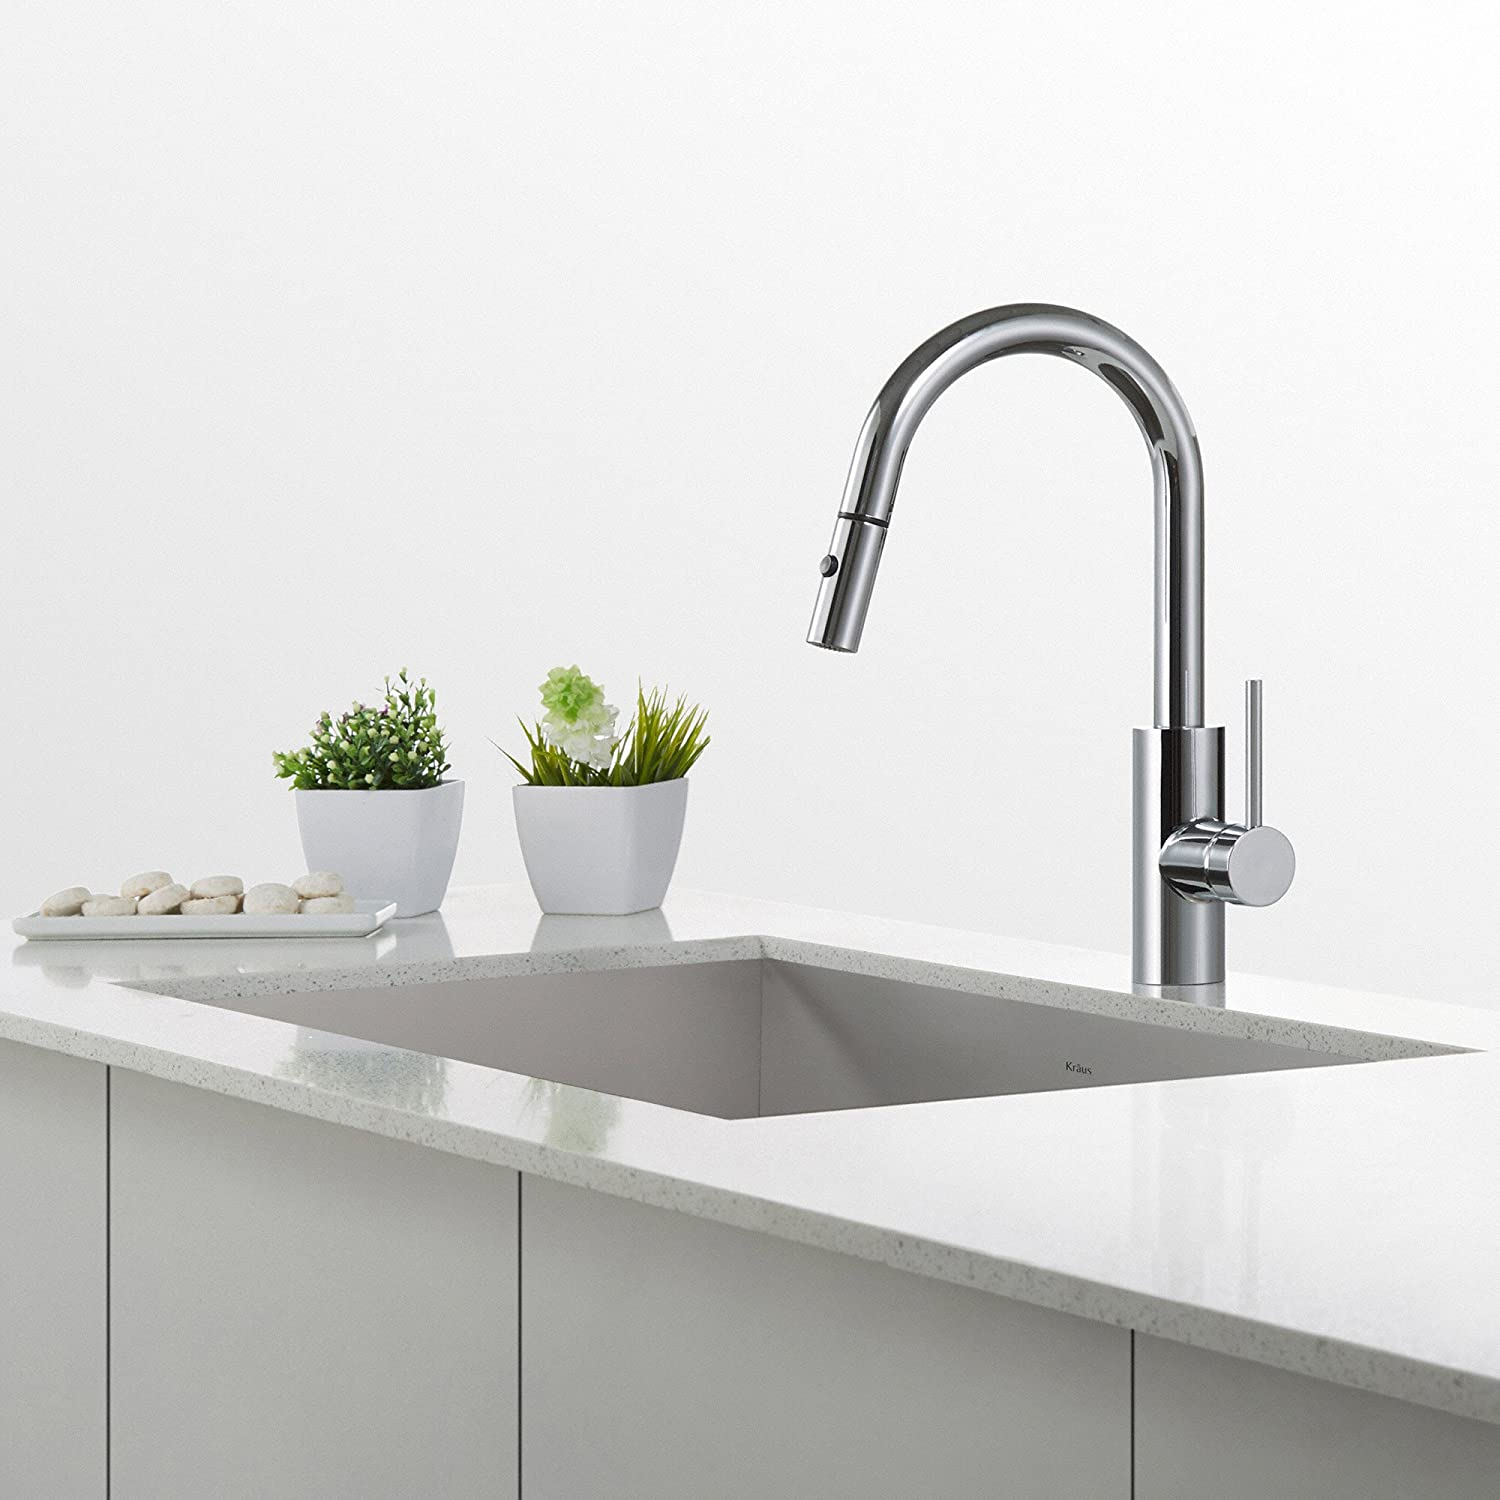 Superieur KRAUS Oletto Single Handle Pull Down Kitchen Faucet In Chrome Finish      Amazon.com